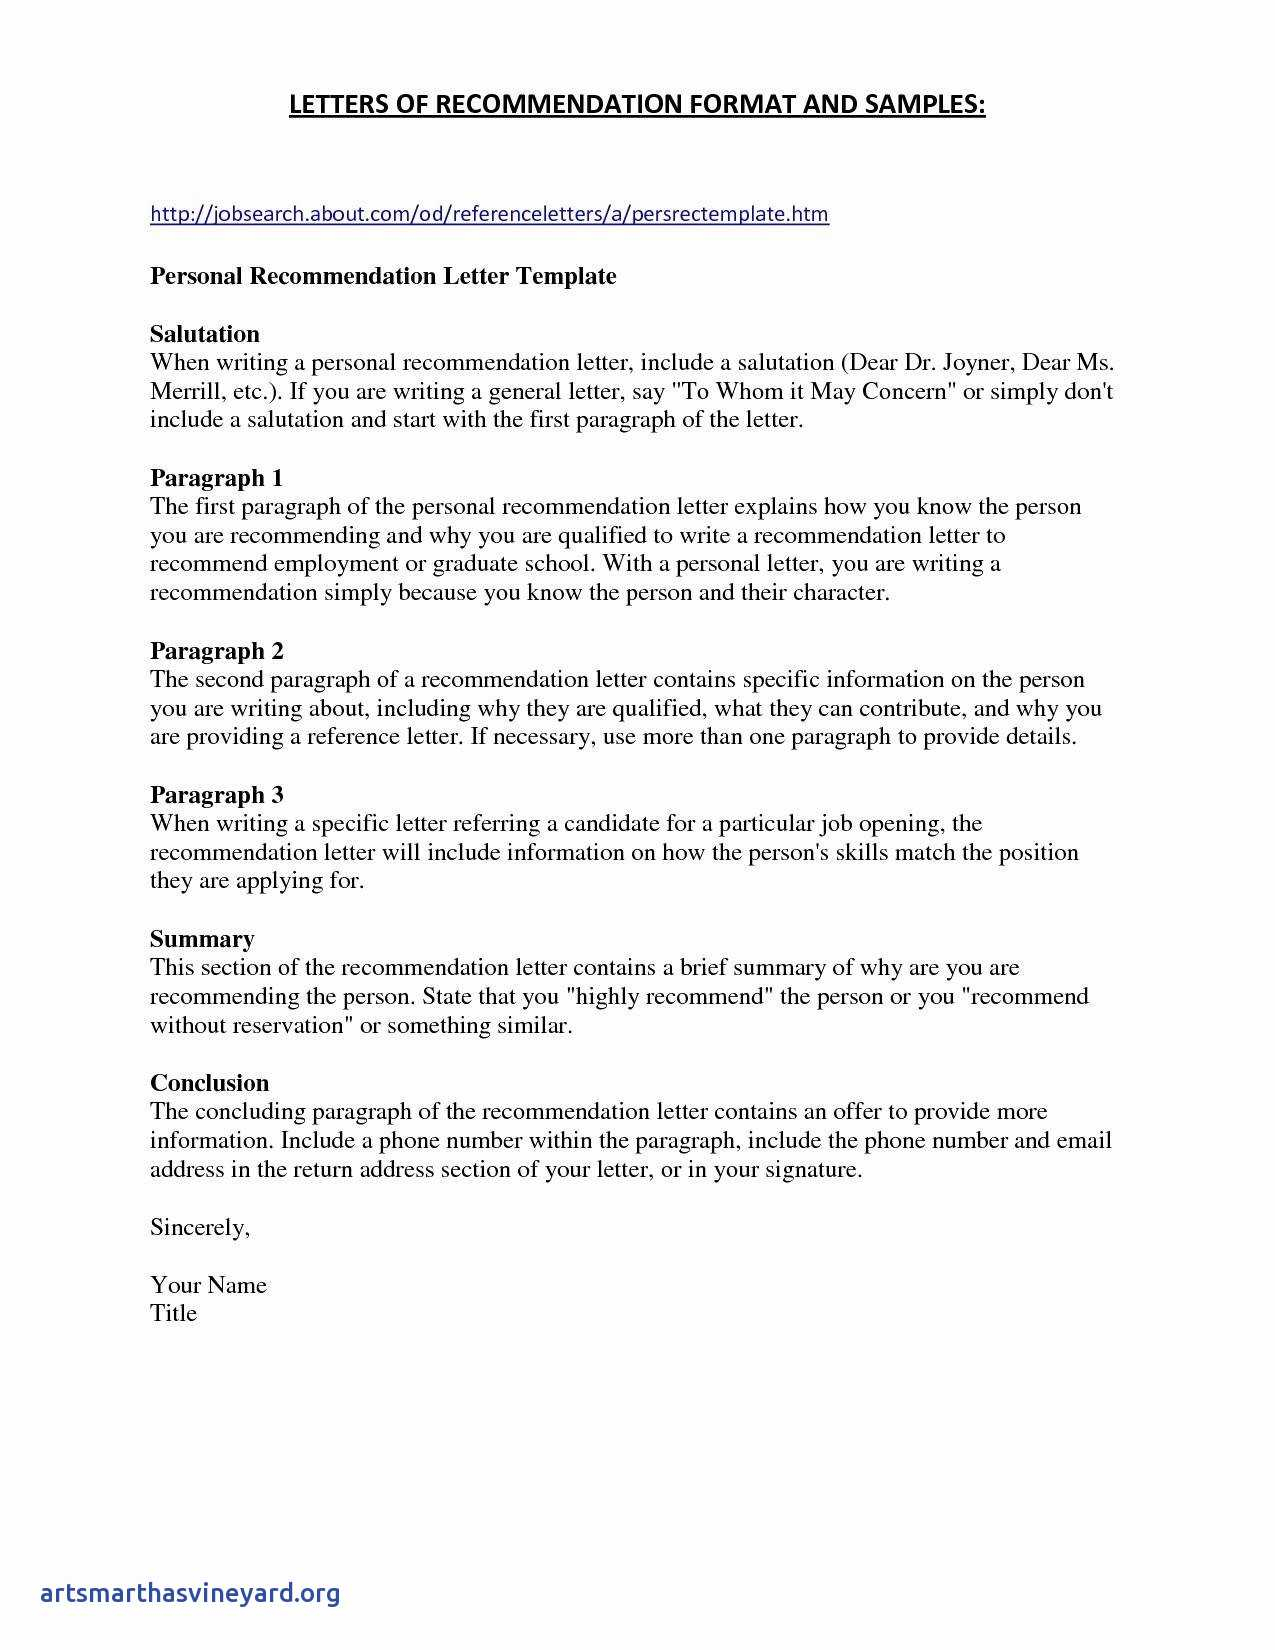 School Reference Letter Template - Unique Personal Reference Letter Sample Design Free Web Templates